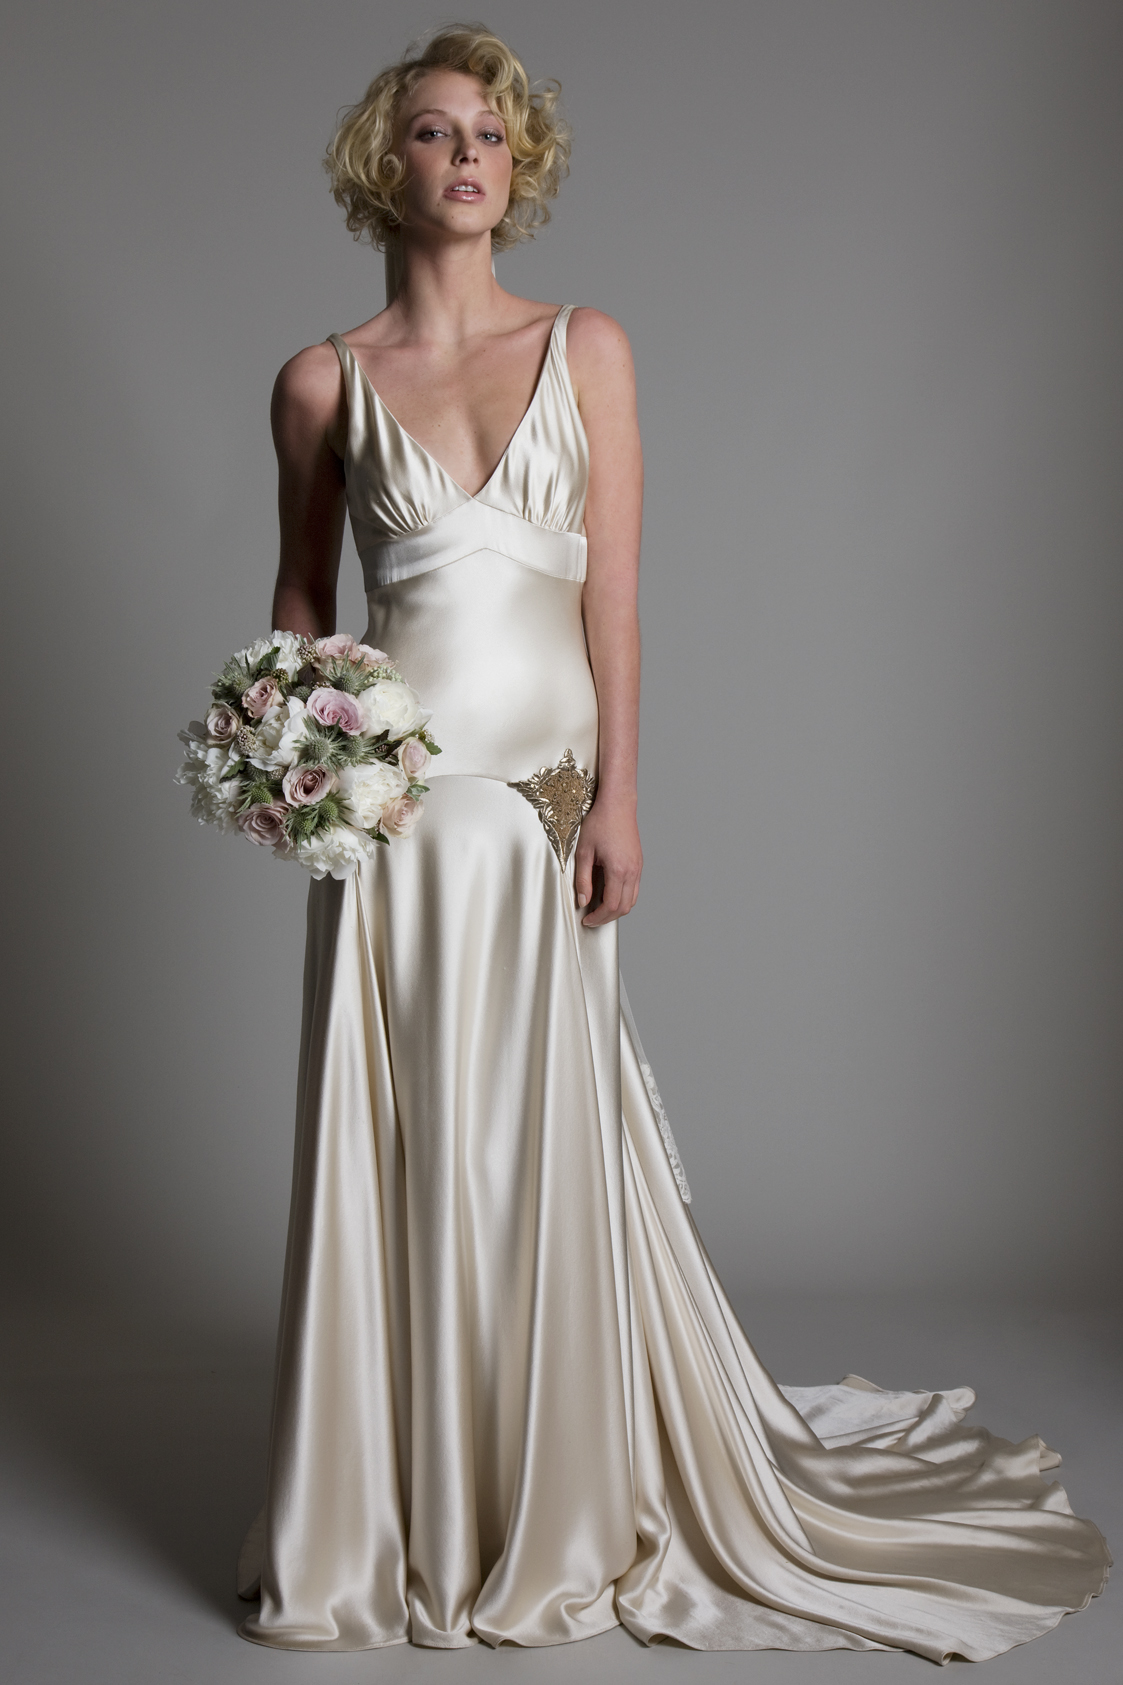 Milly Bafta V neck and low V back greige bridal wedding dress with godgets and embellishment detailing by Halfpenny London